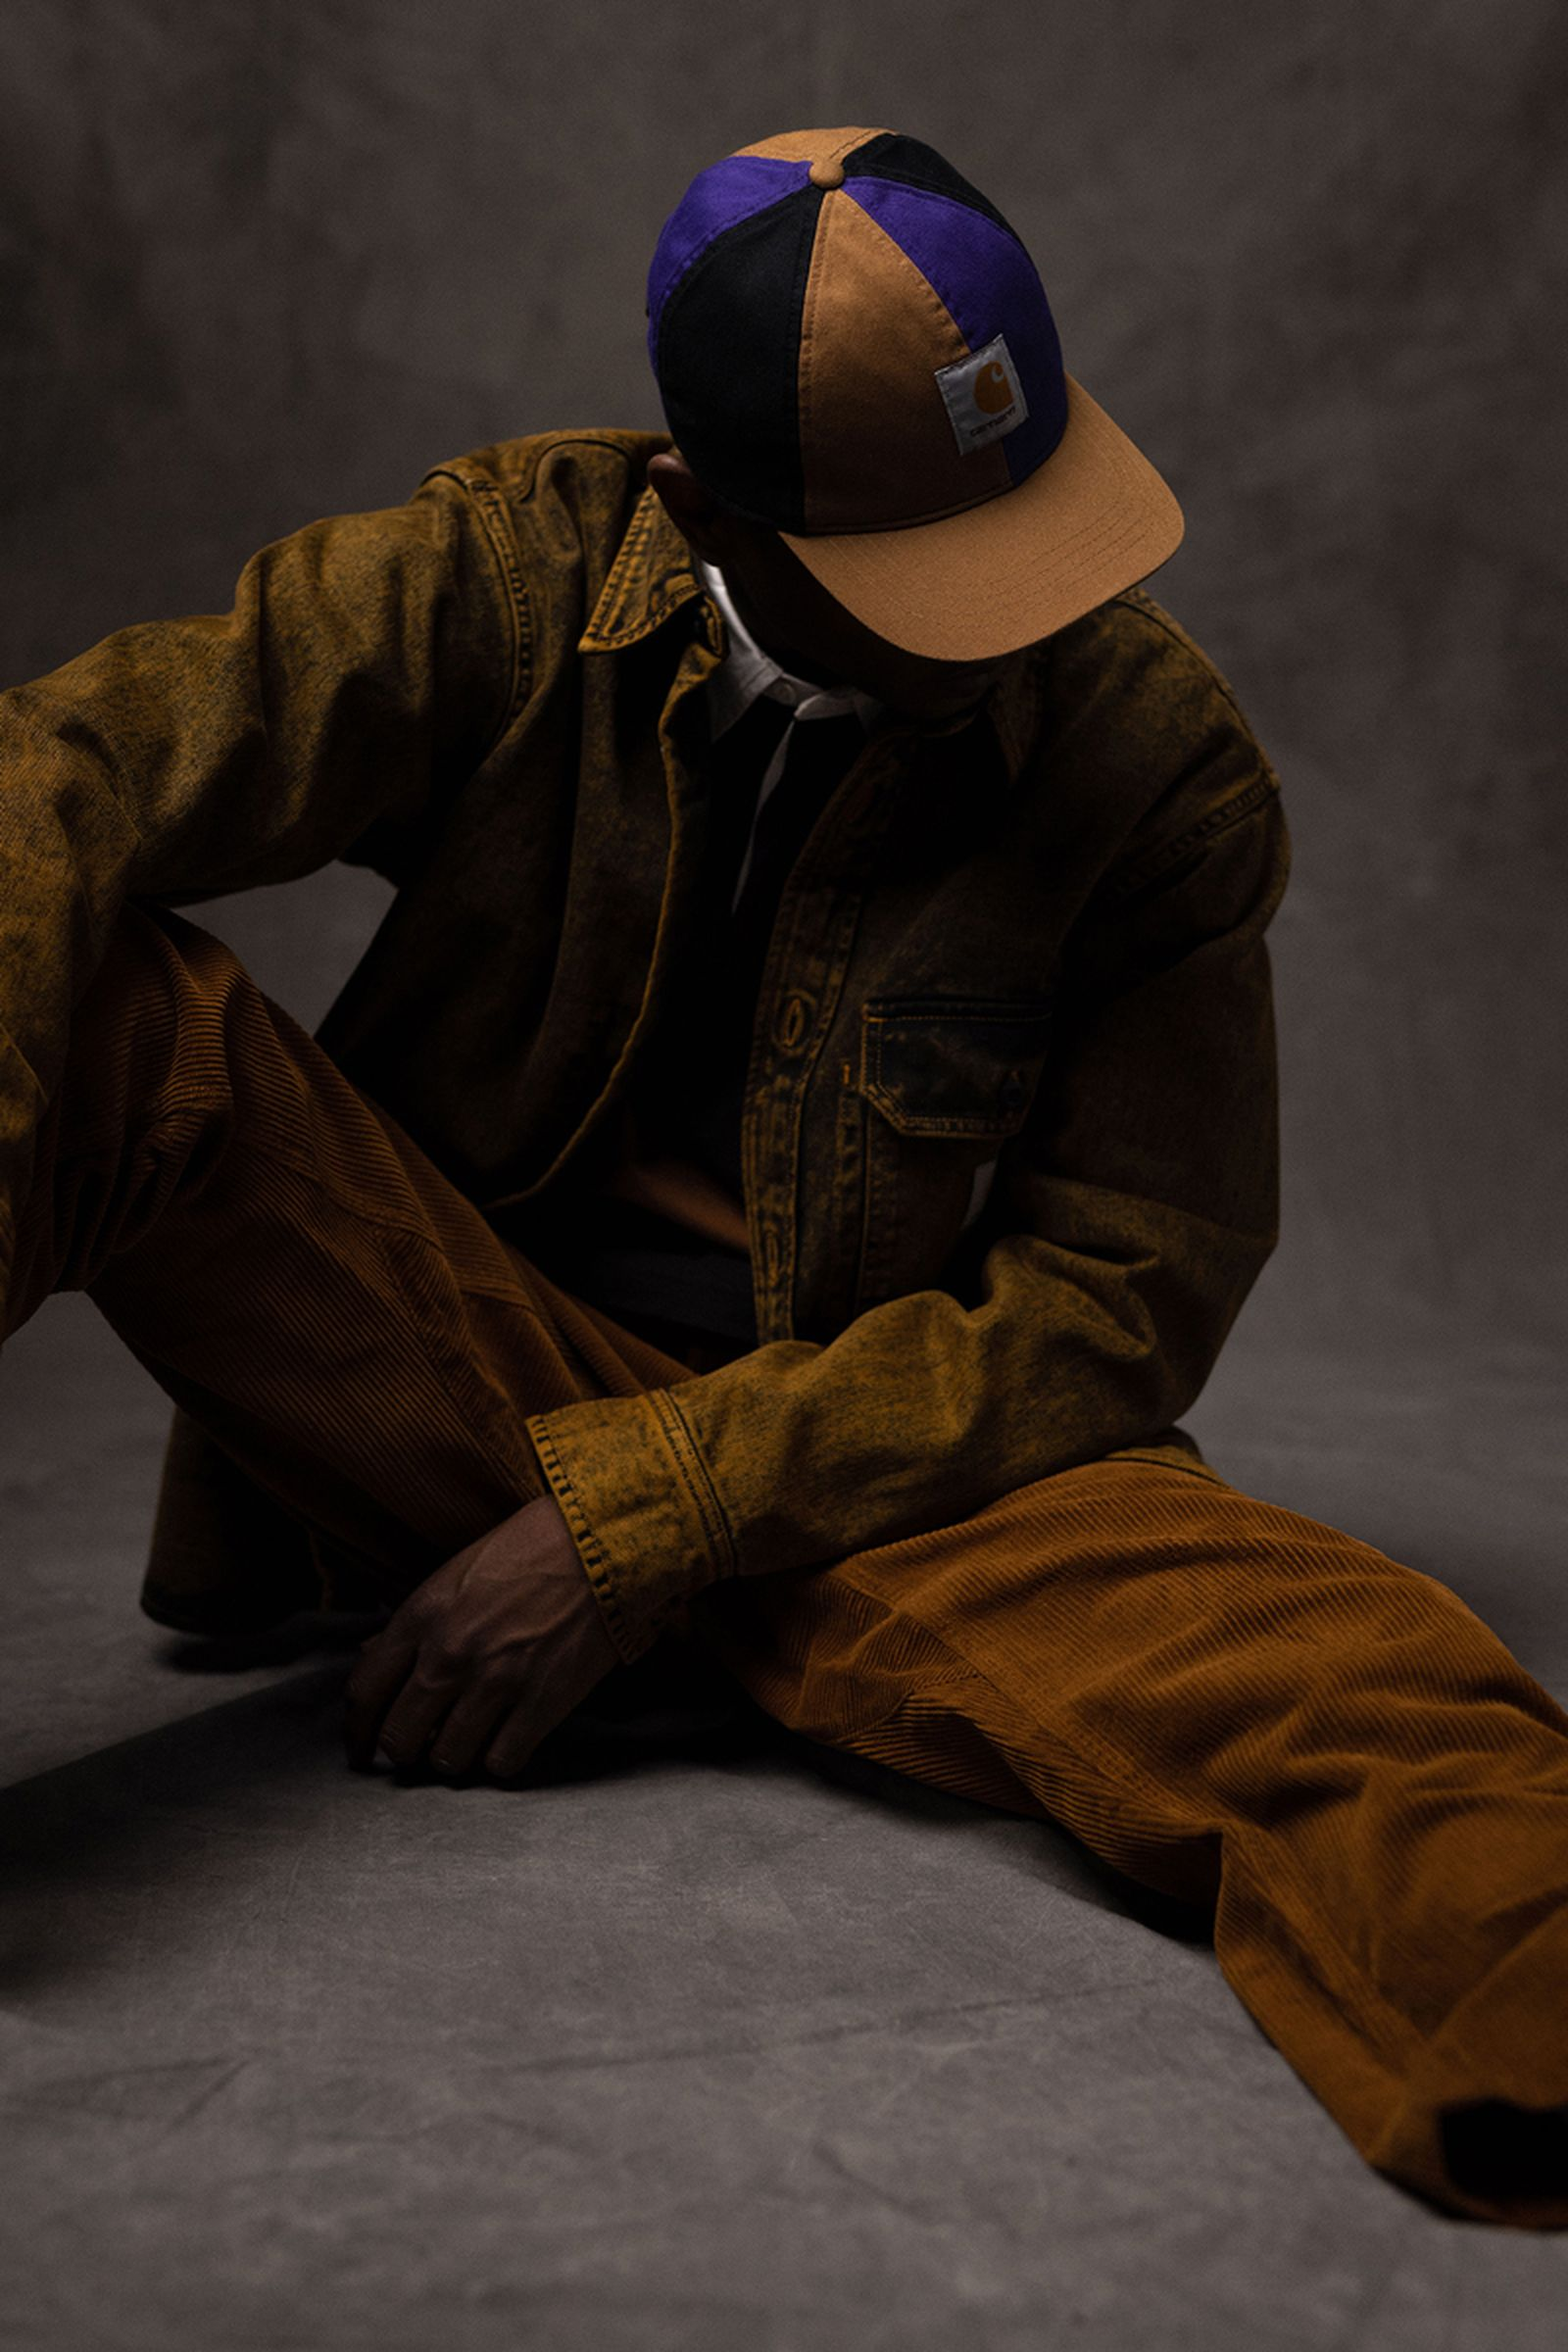 carhartt-wip-fall-winter-2021-collection- (18)